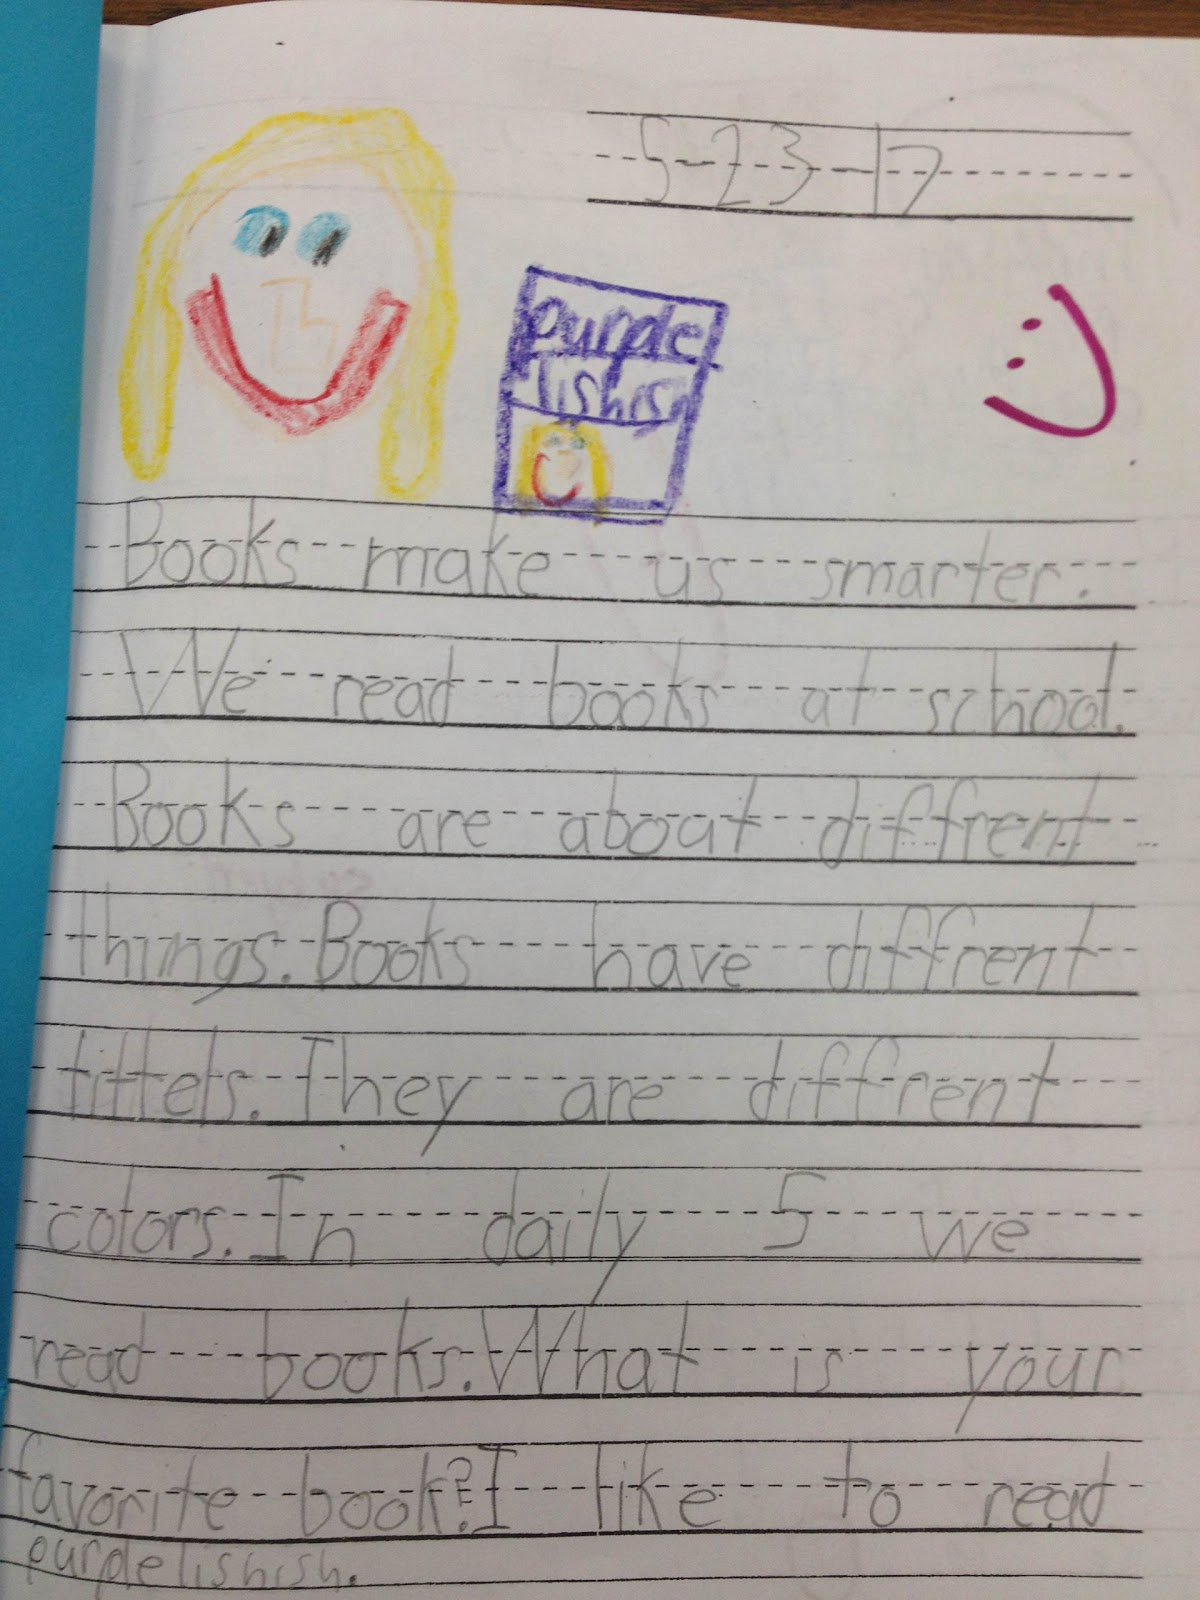 What The Teacher Wants Journaling Tips For Kids Makes Pretty Dang Good Writers